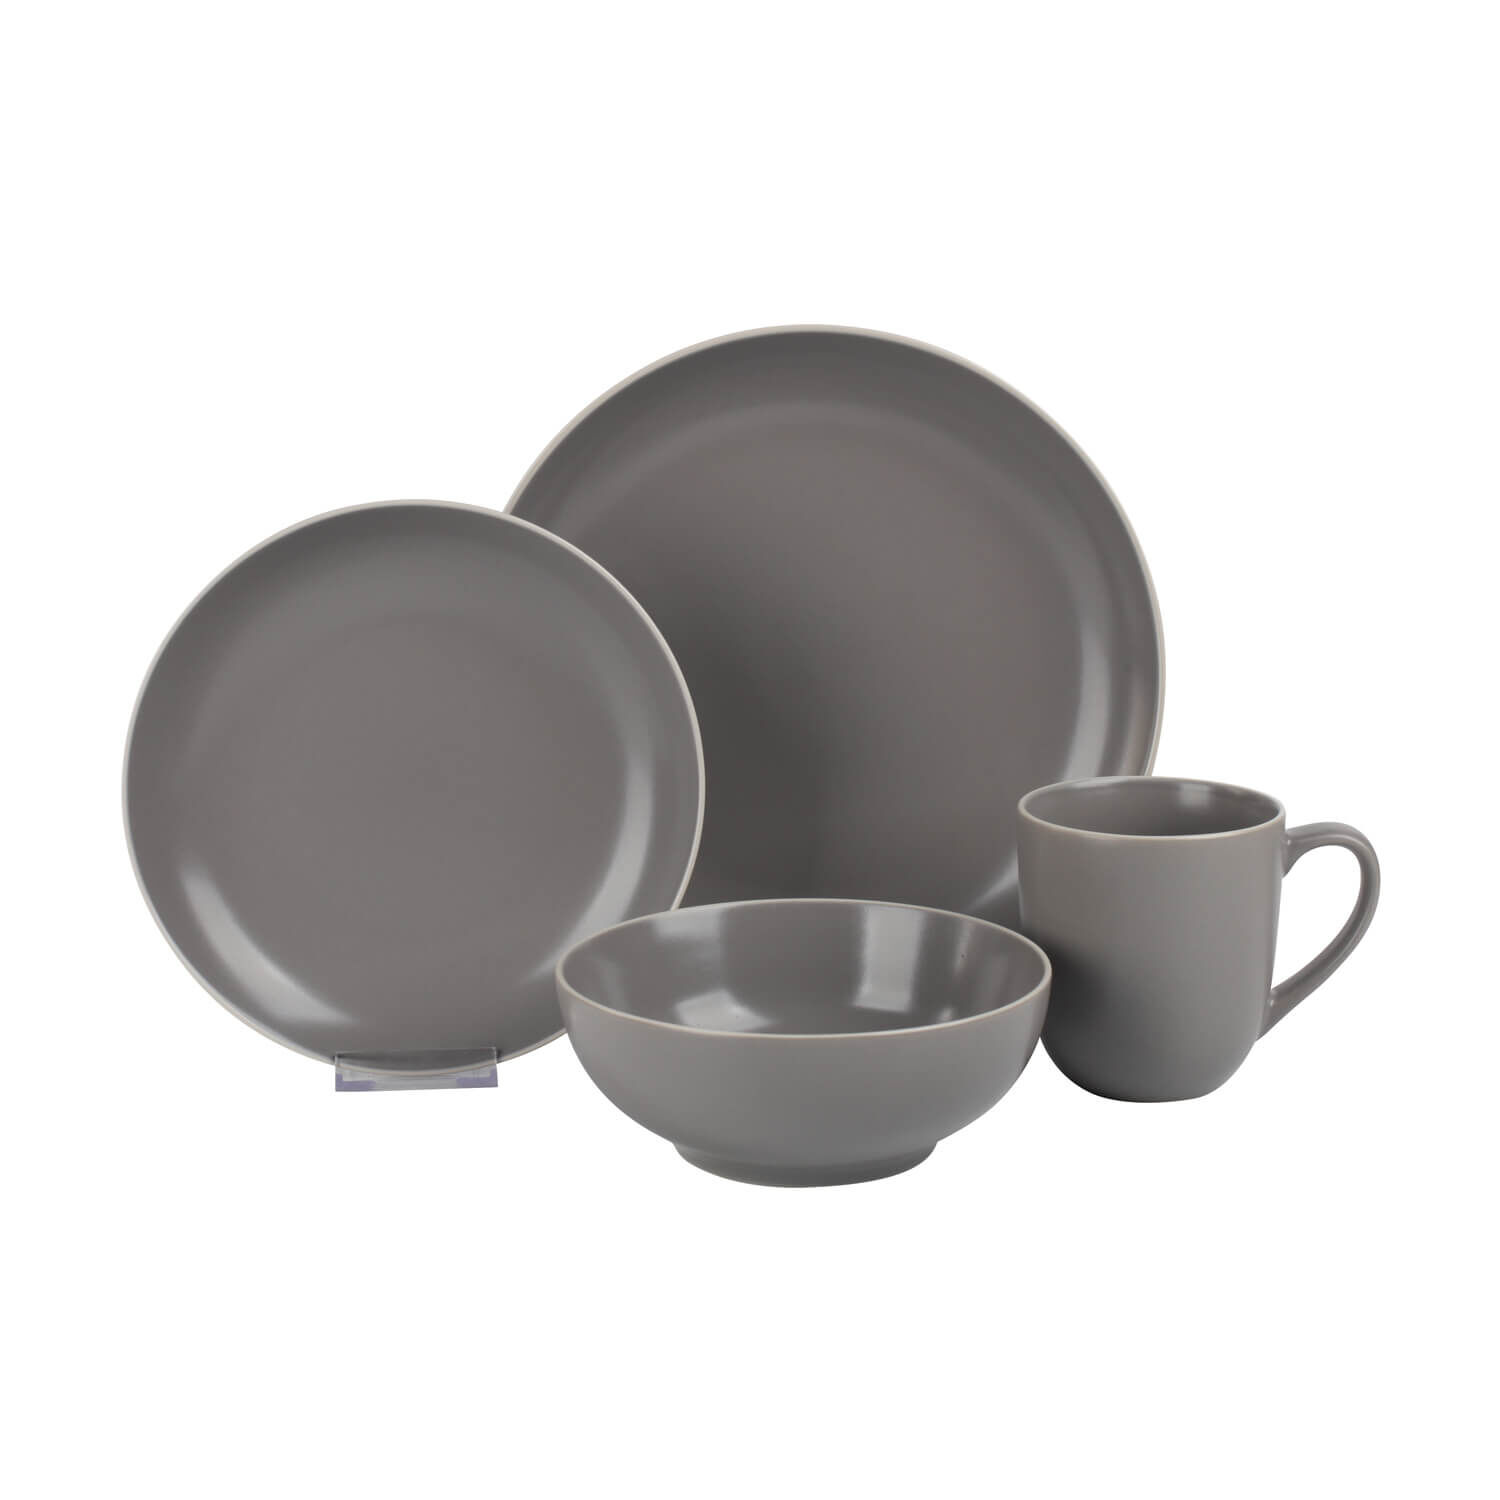 Wensley Stone 16 Piece Dinner Set  sc 1 st  Homestore and More & Wensley Stone 16 Piece Dinner Set - Home Store + More